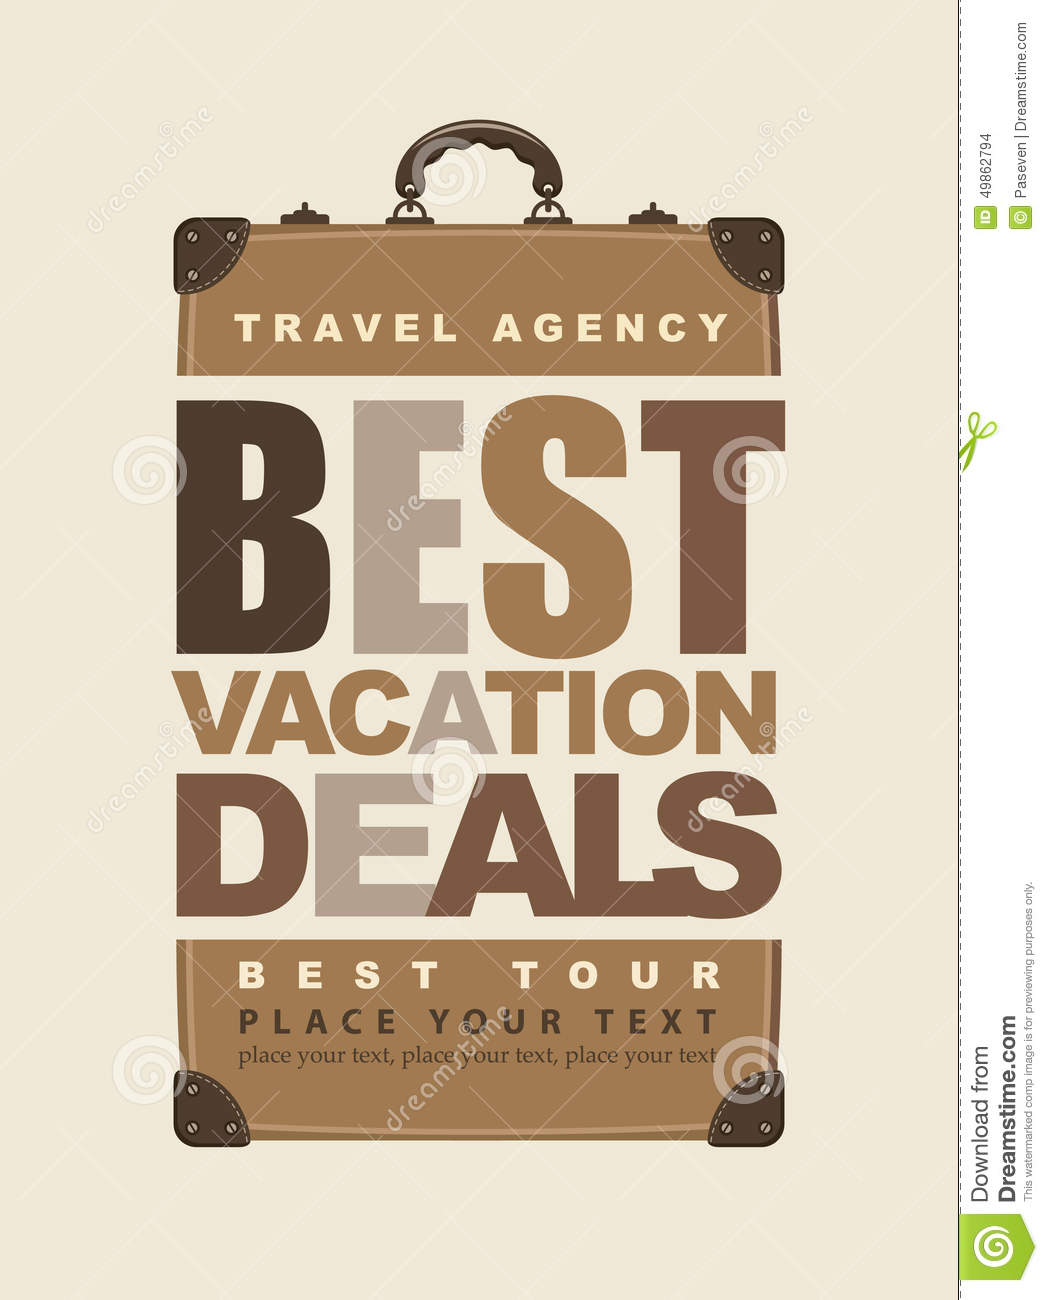 Best travel deals by date